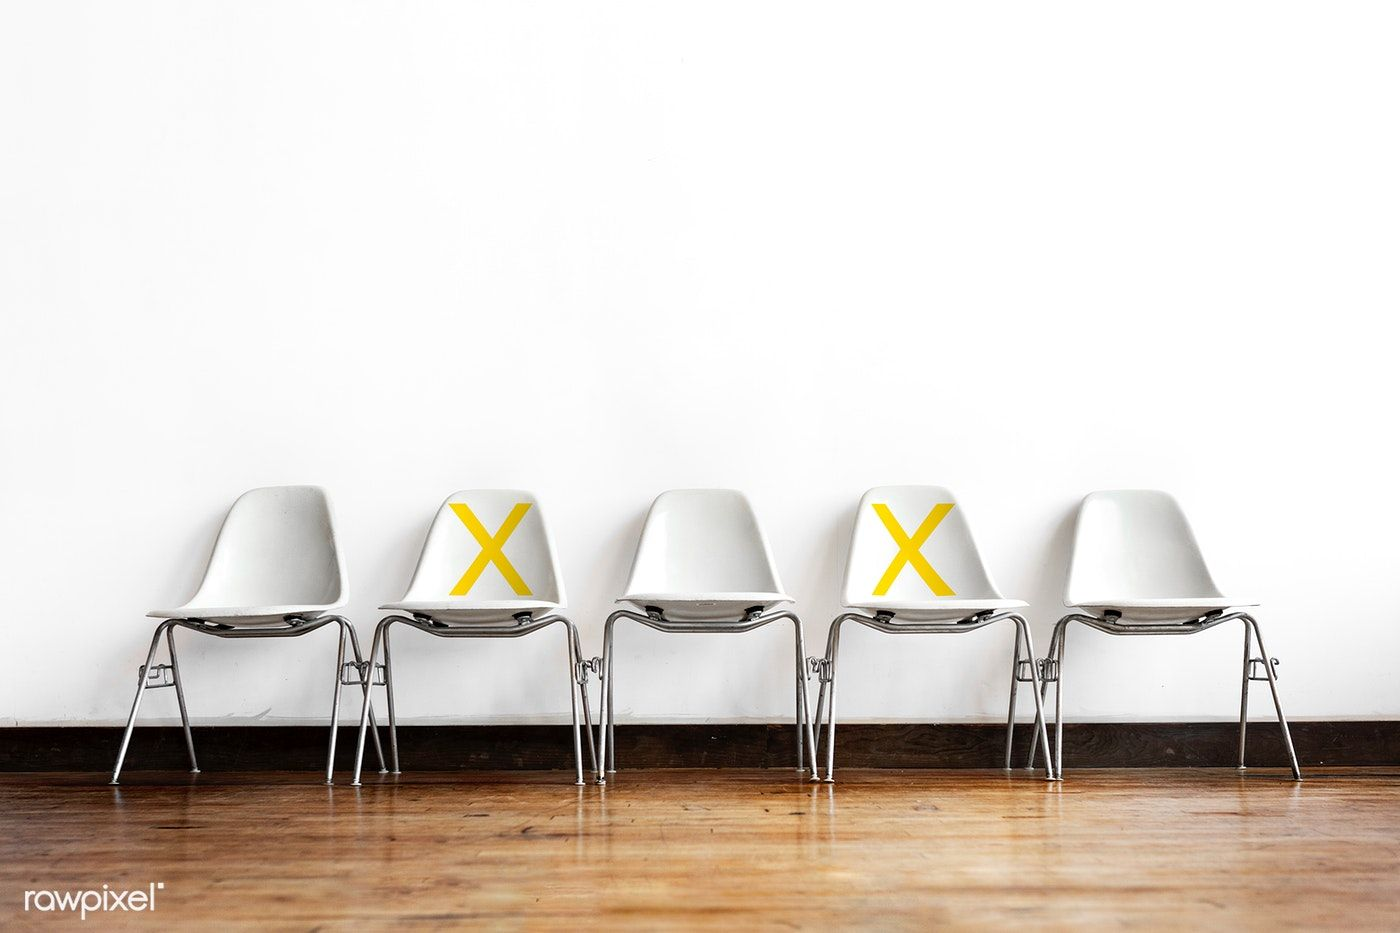 Empty Seats With A Social Distancing Free Image By Rawpixel Com Eyeeyeview In 2020 Seating Design Resources Image